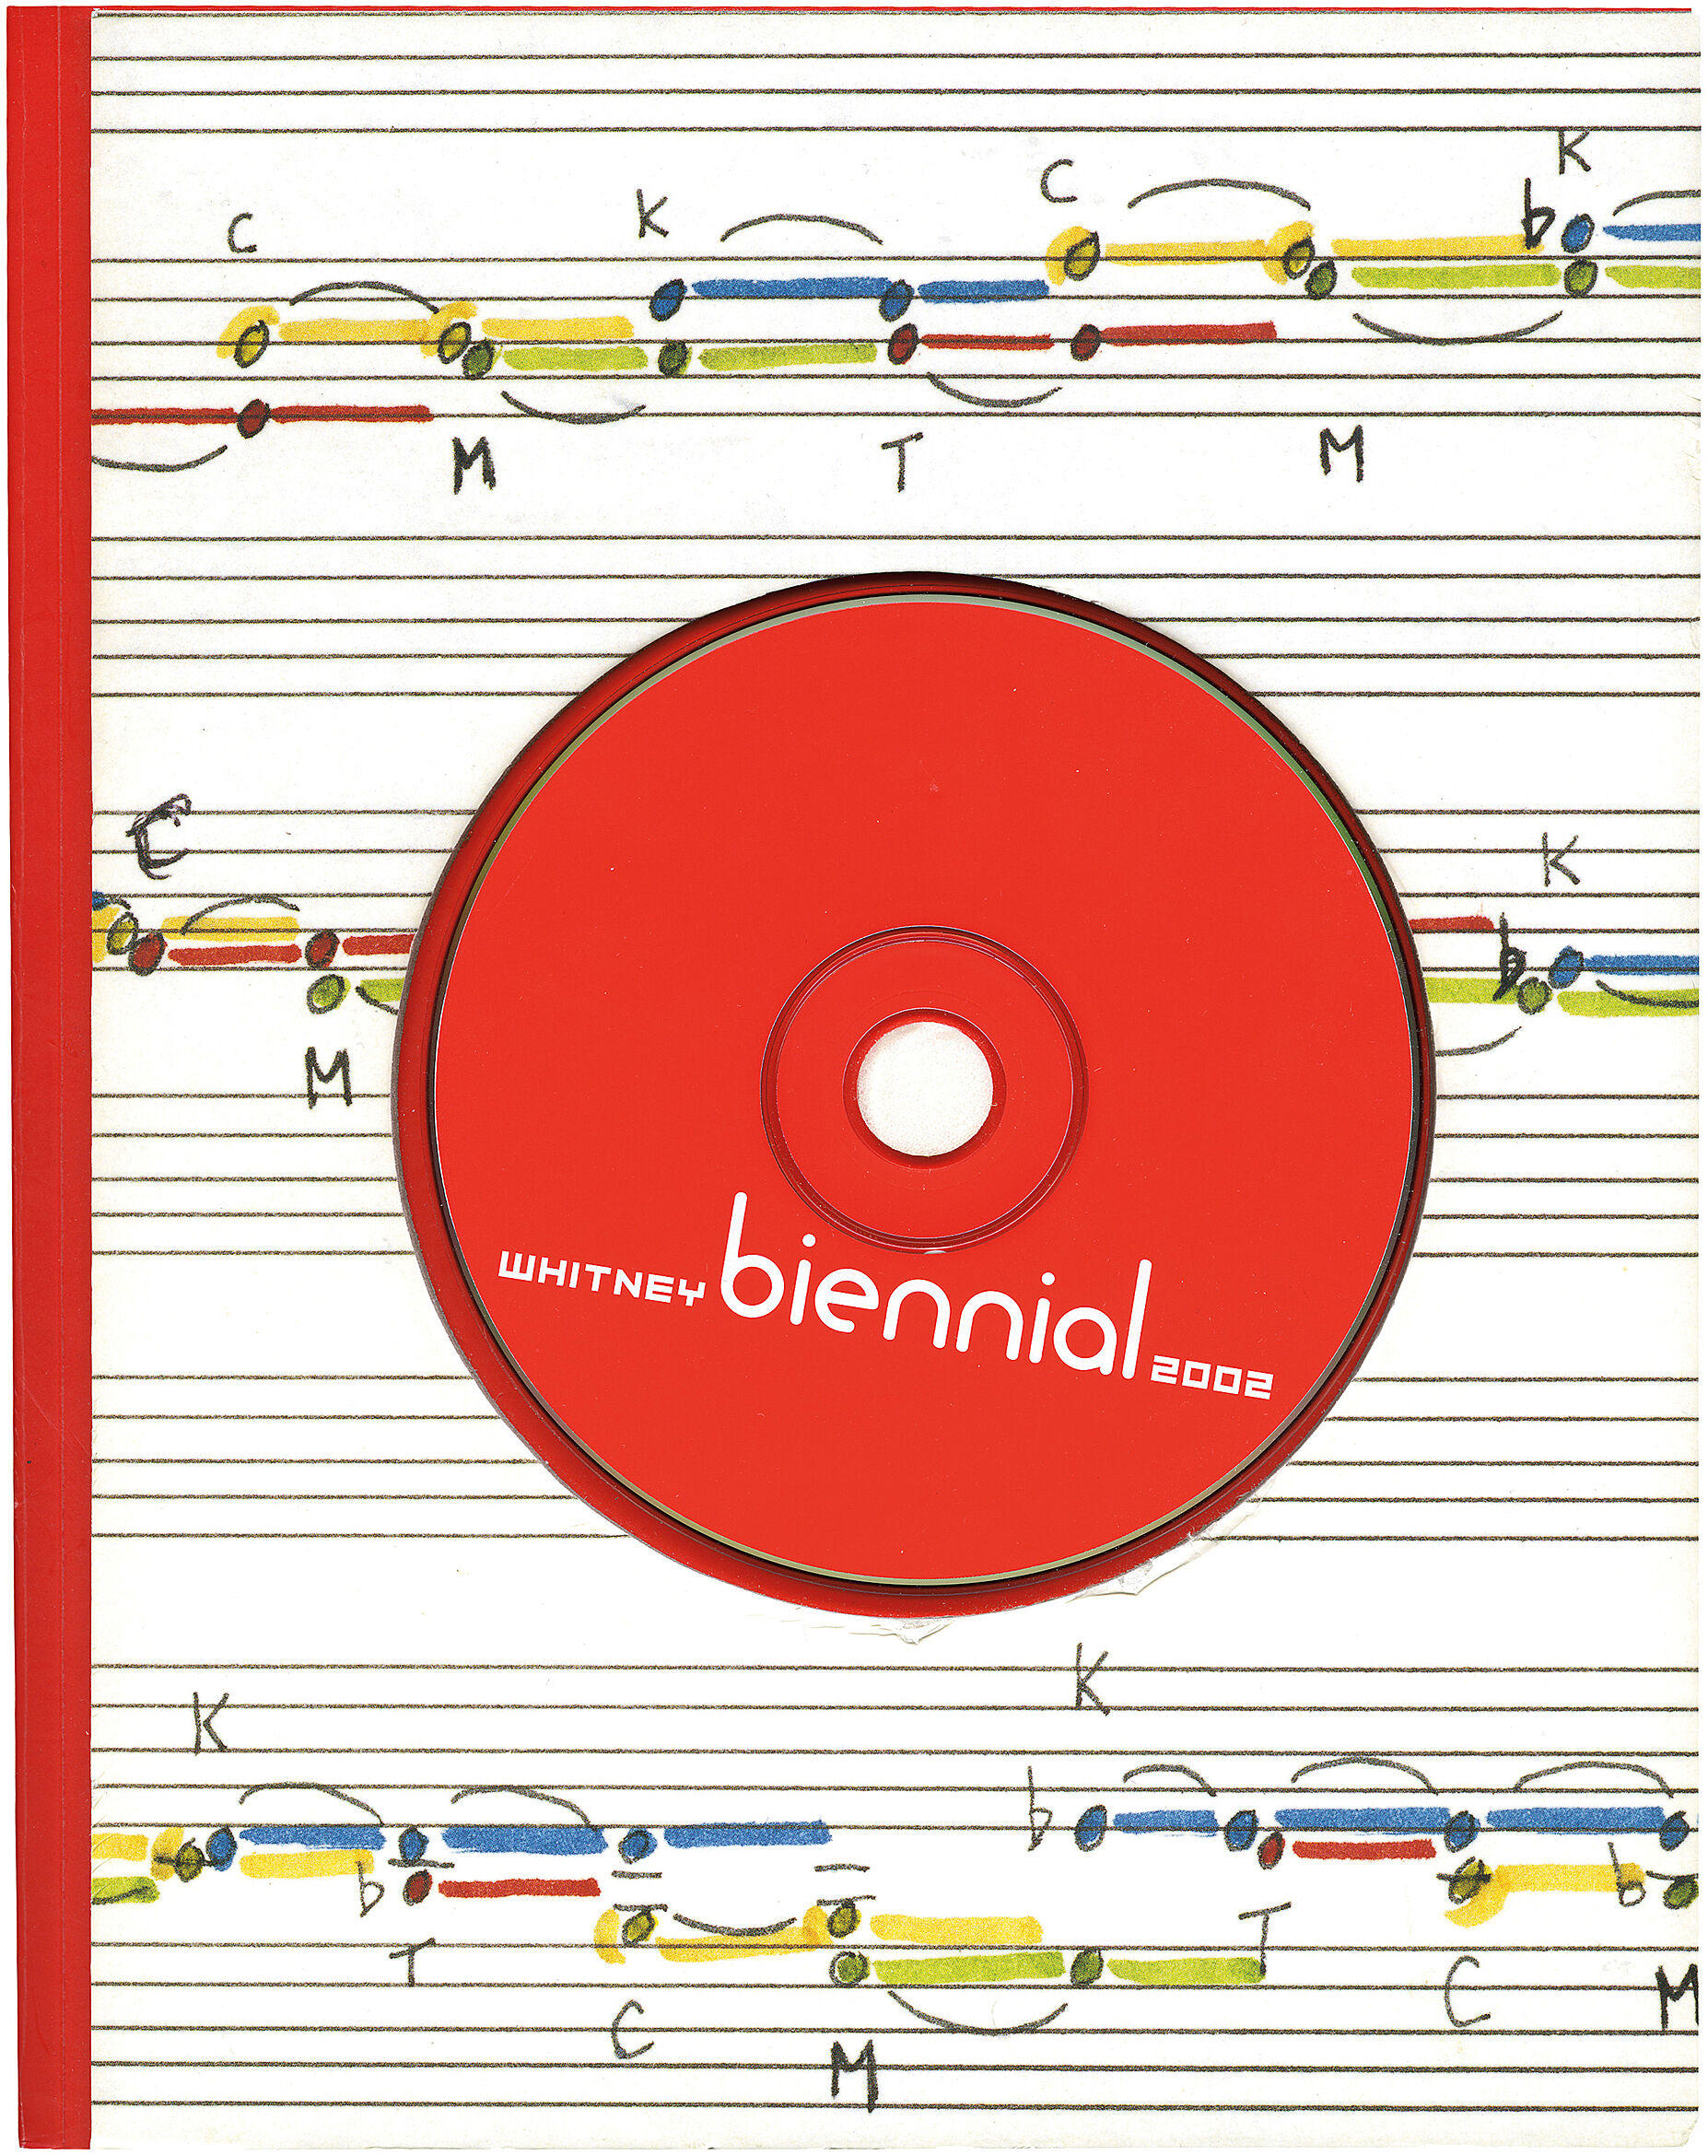 Cover for 2002 Biennial catalogue